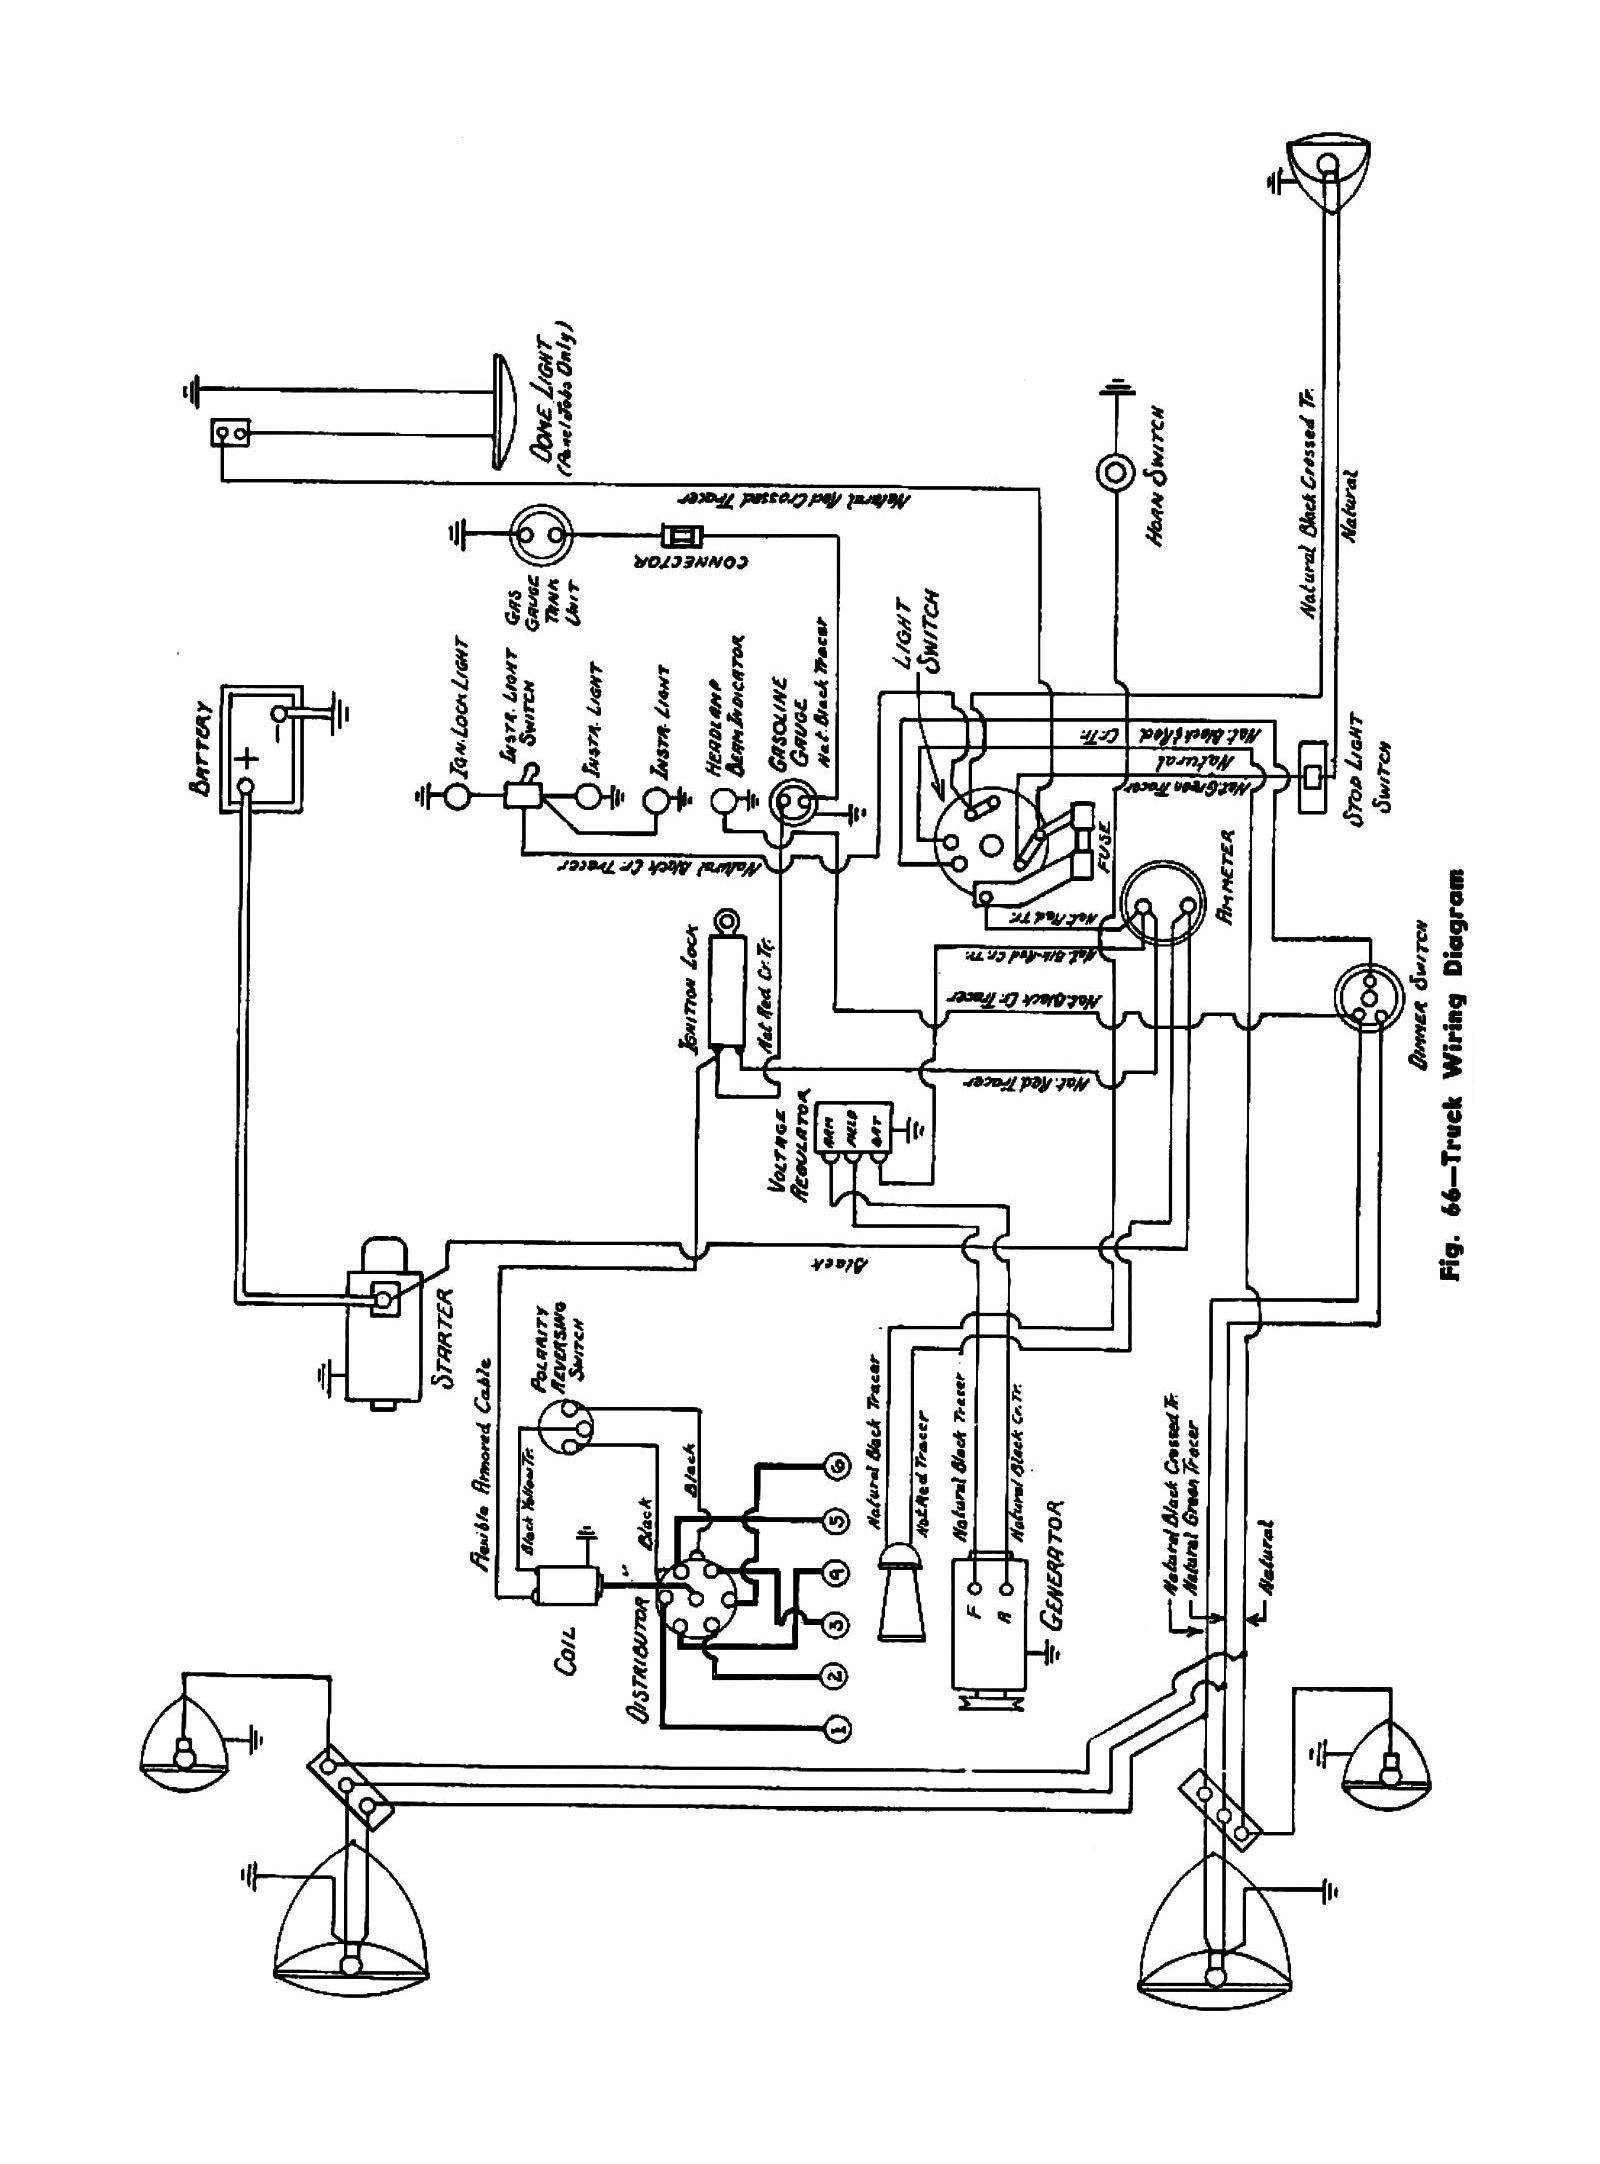 45truck ihc truck wiring diagrams mazda truck wiring diagrams \u2022 free  at gsmportal.co